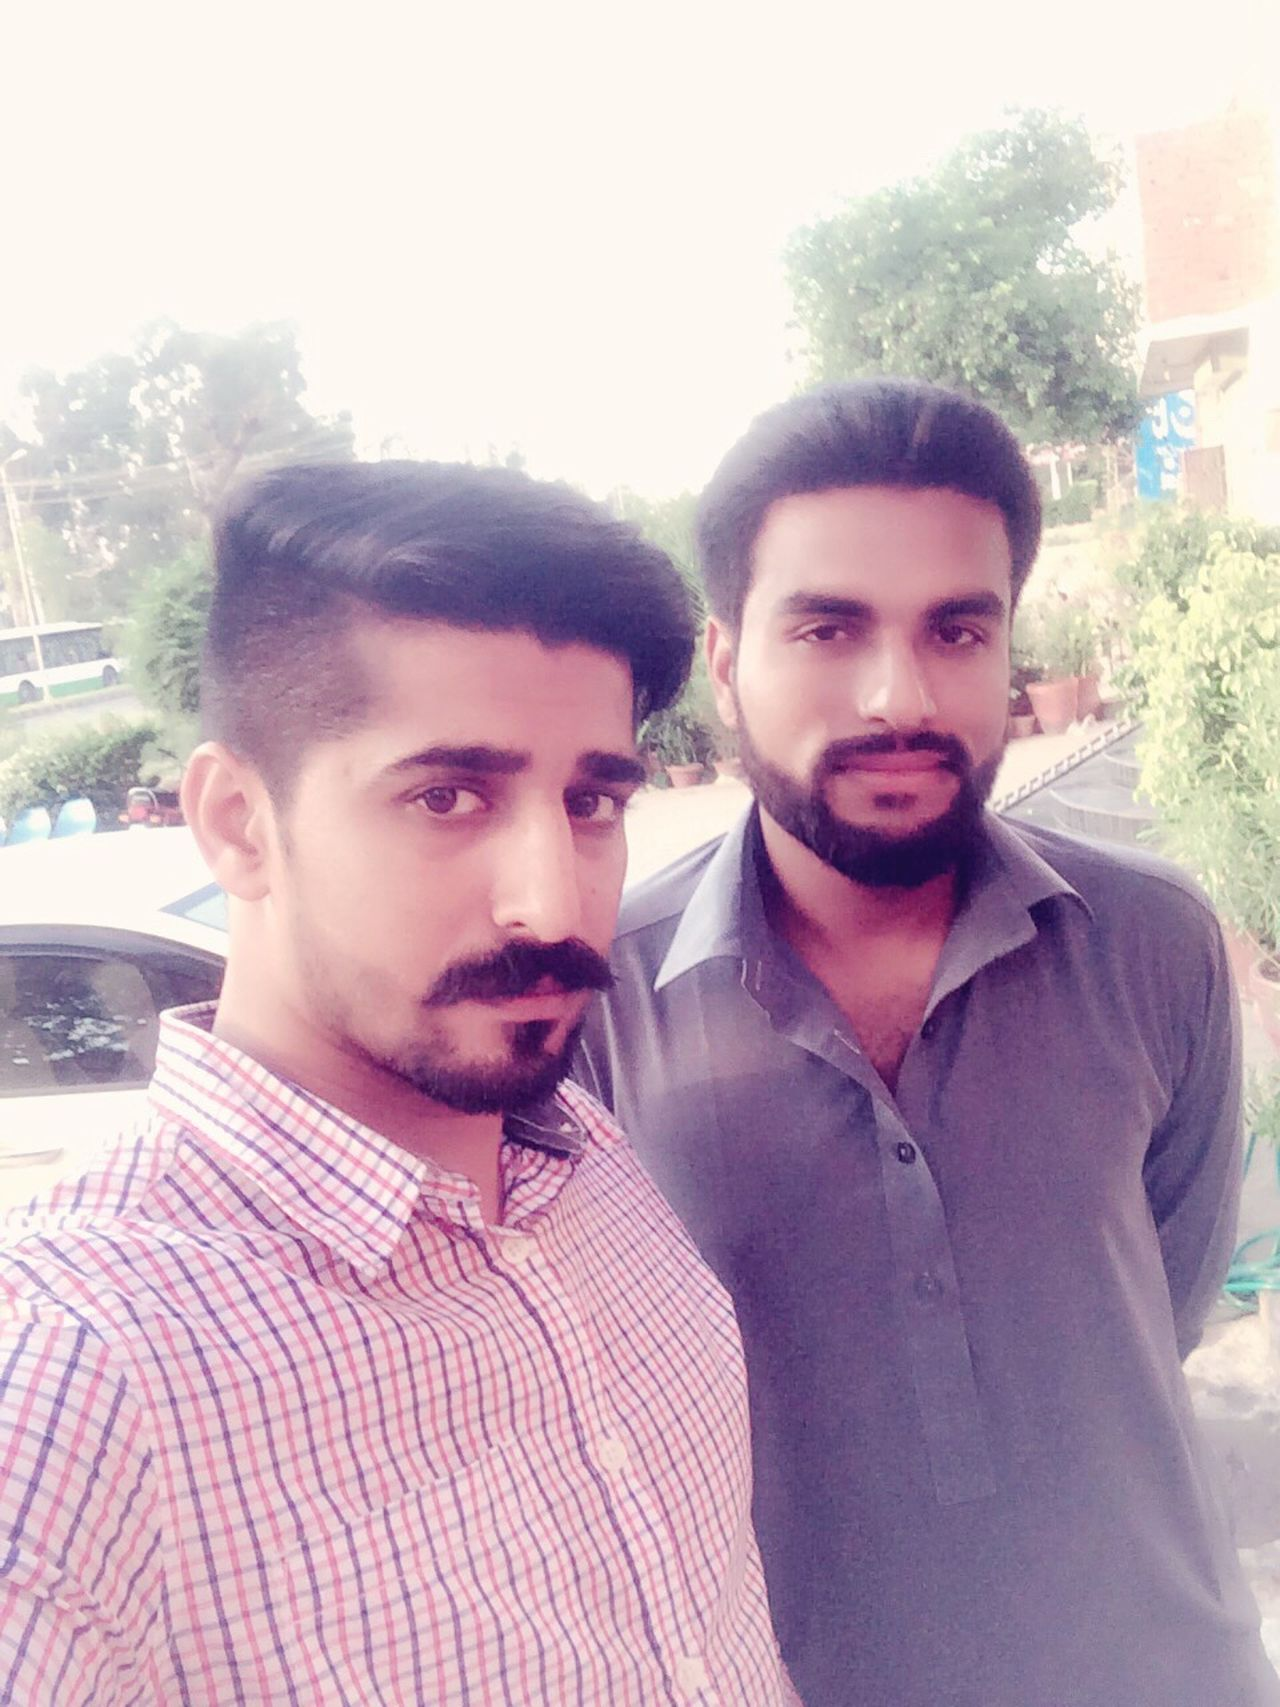 Young Men Looking At Camera Enjoying Life Hello World Selfie ✌ That's Me With Friends First Eyeem Photo Today's Hot Look My City Dhaunkal Smiling Beautiful Pakistan Hi! Asian